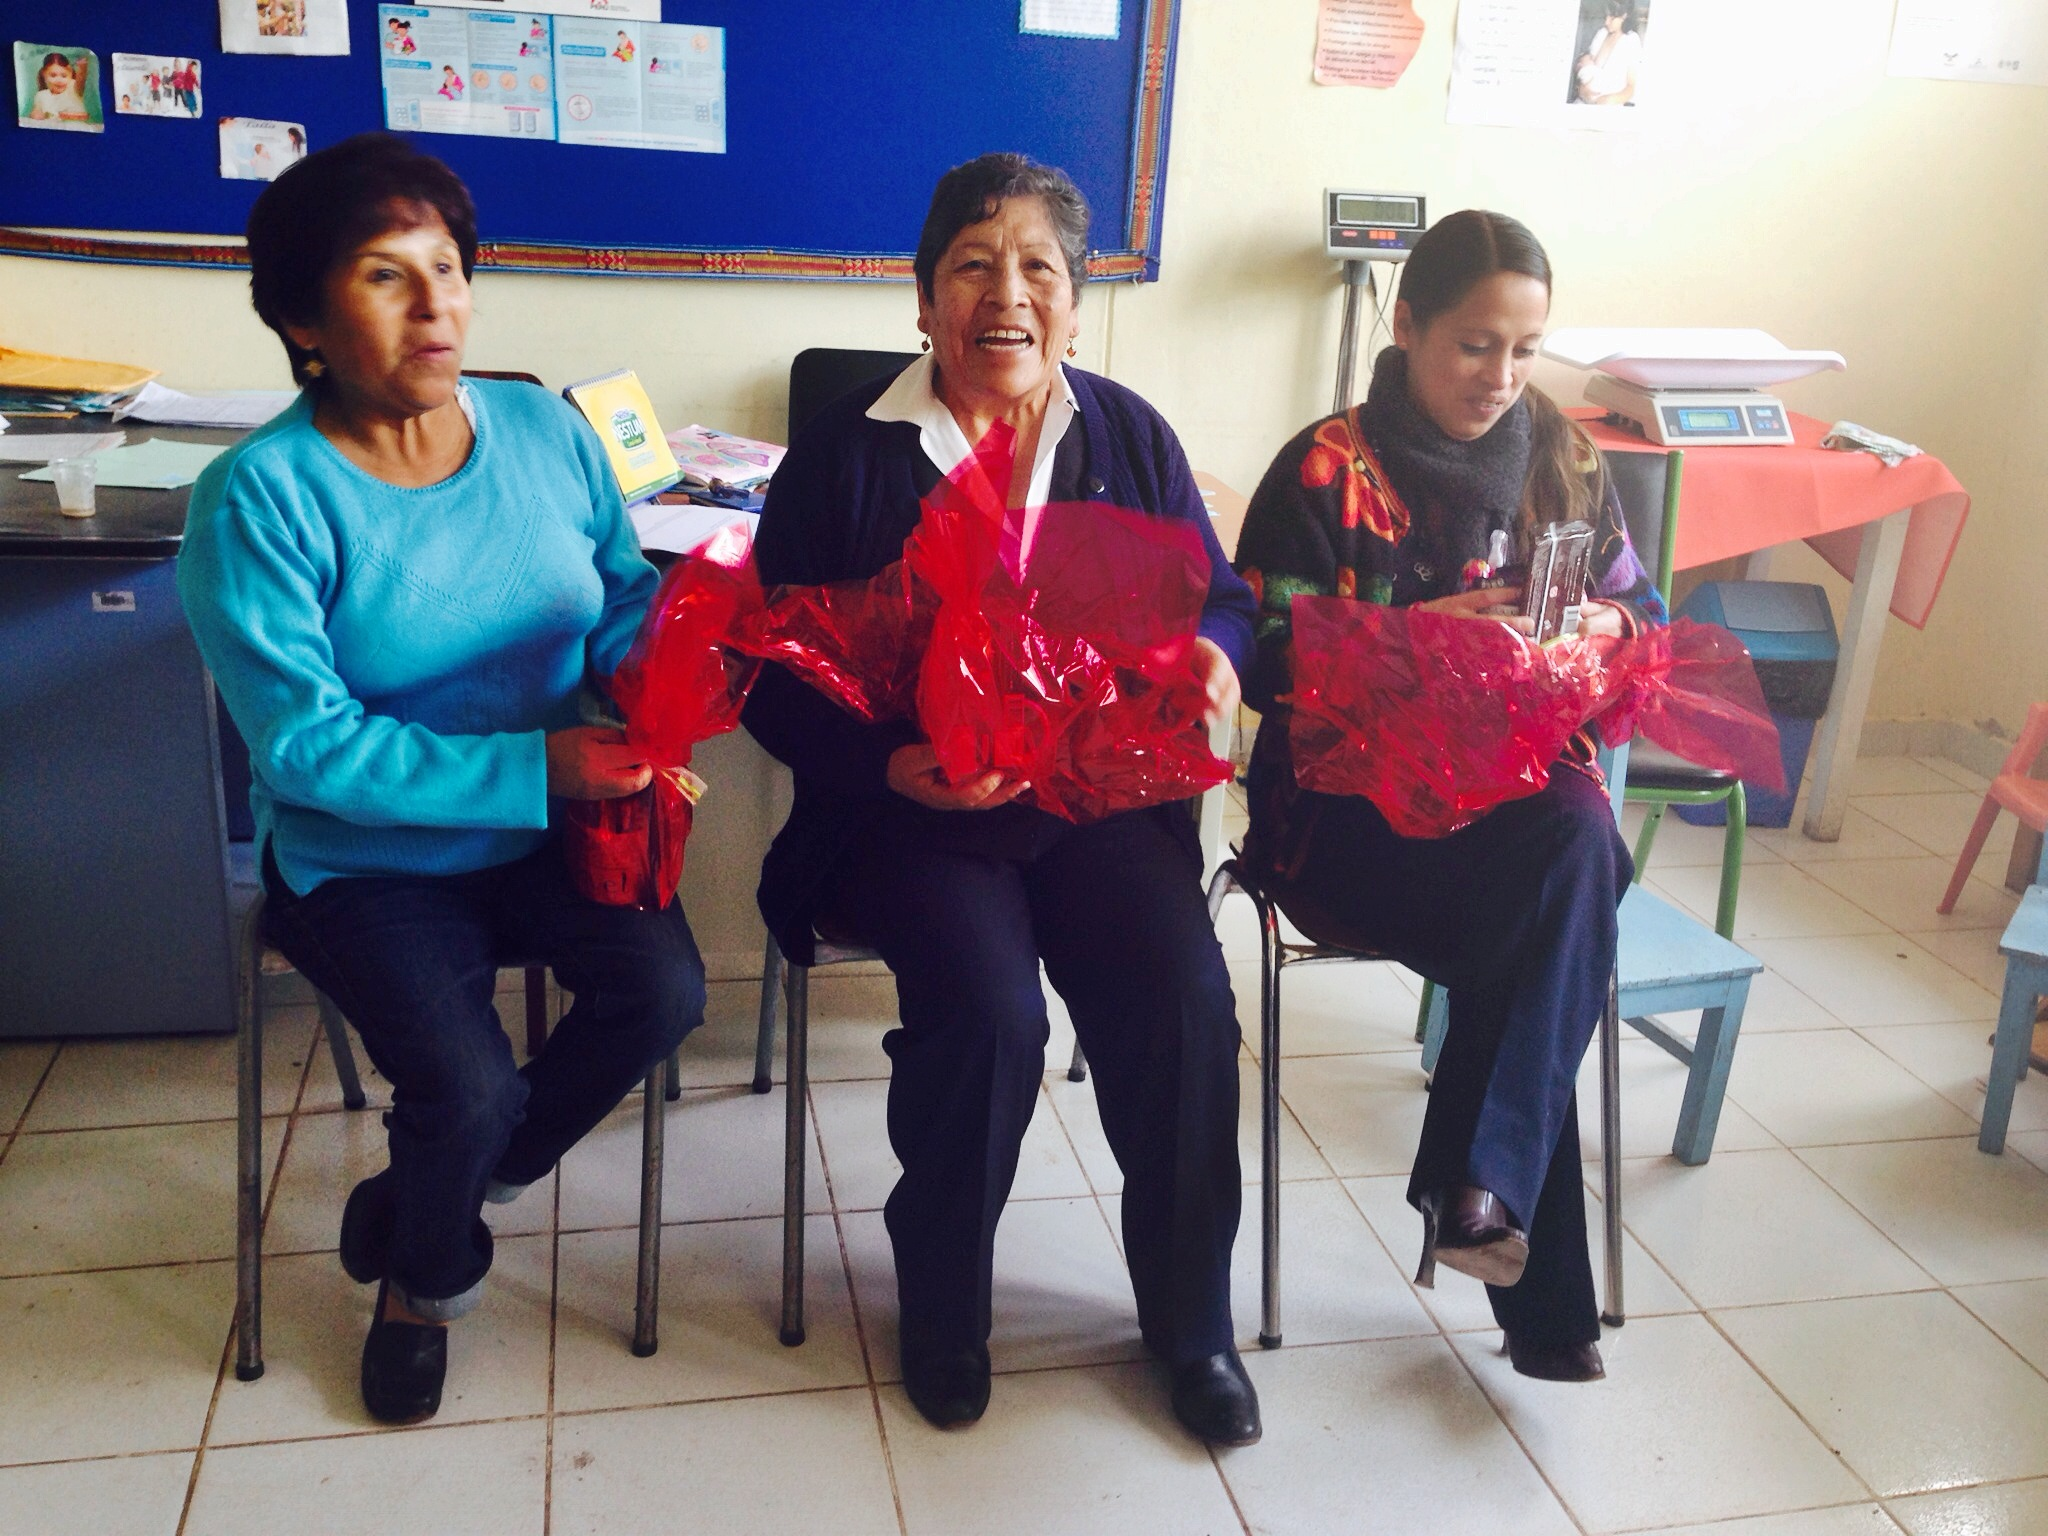 Norita (Little Nora), Esther, the head nurse, and a new nurse. Nurses had never gotten personalized gifts before, so they were so surprised and happy as they discovered each treat inside! Photo taken: Dec. 3.